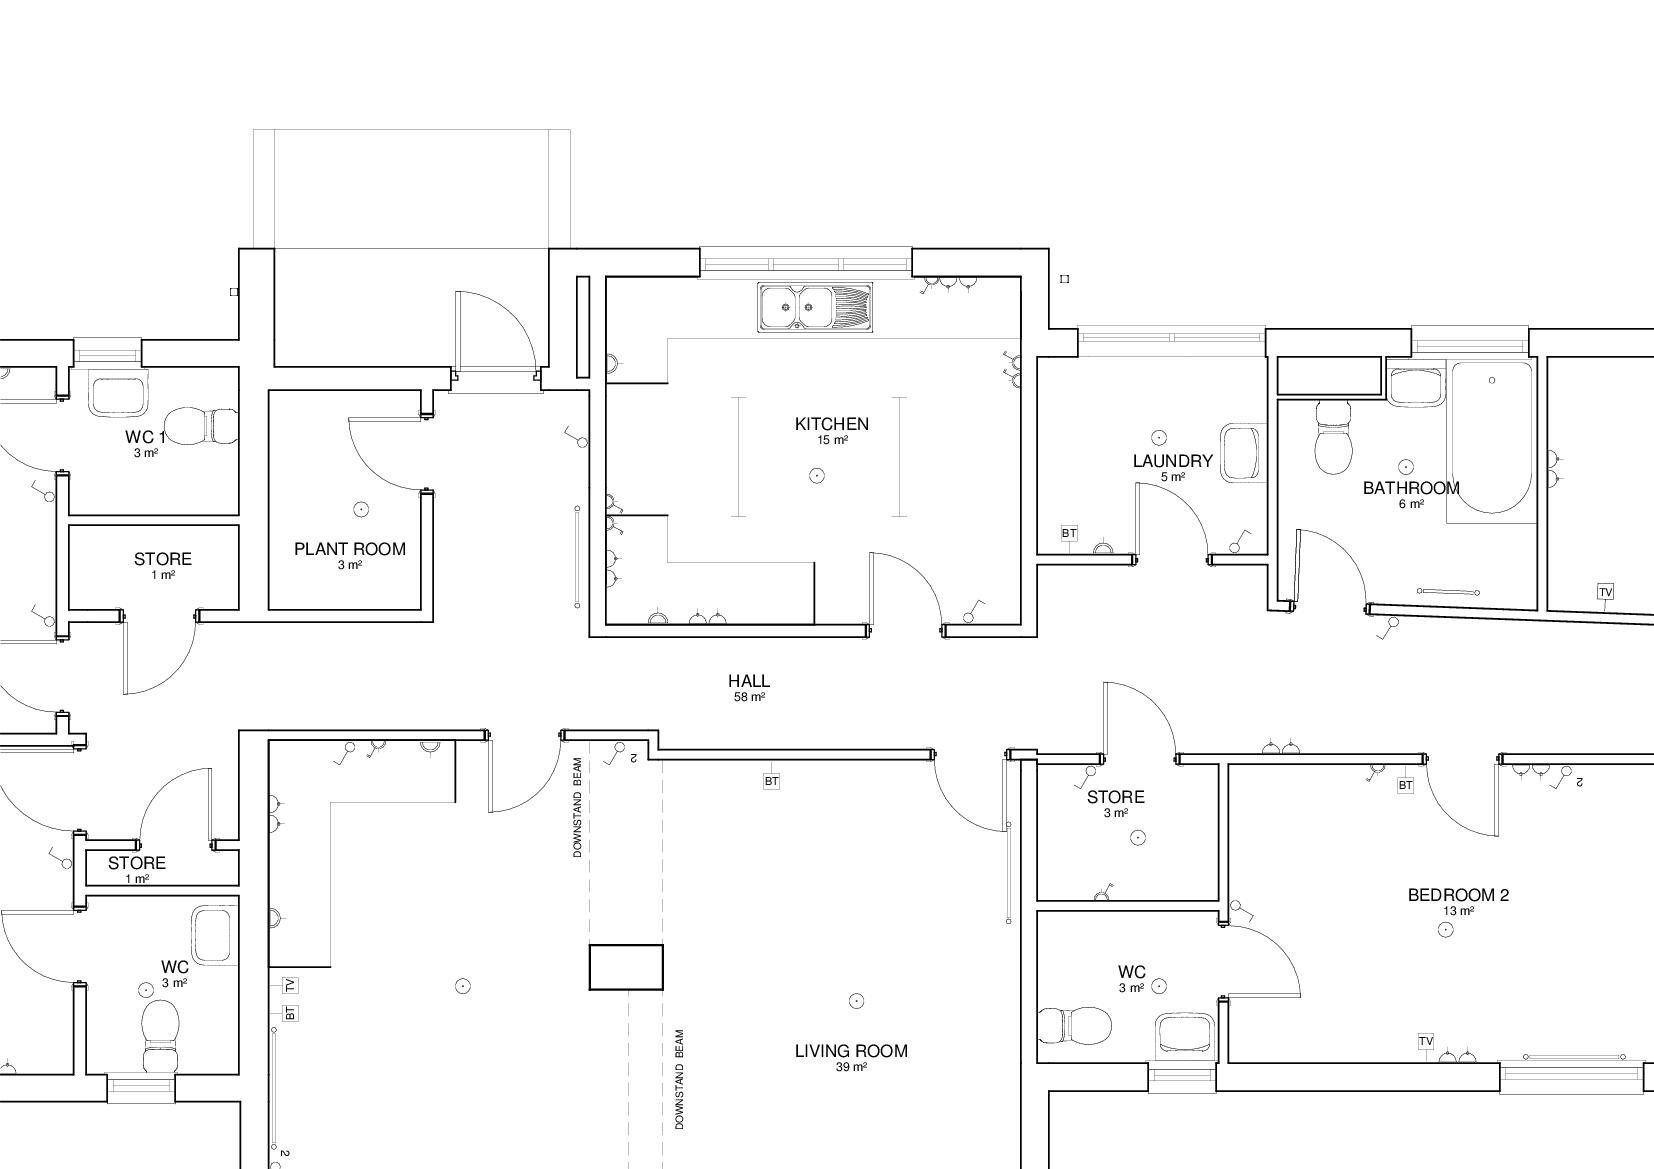 Solved Light Fittings Smoke Detectors Not Showing On Plan Wiring Diagram Free Download Along With Detector